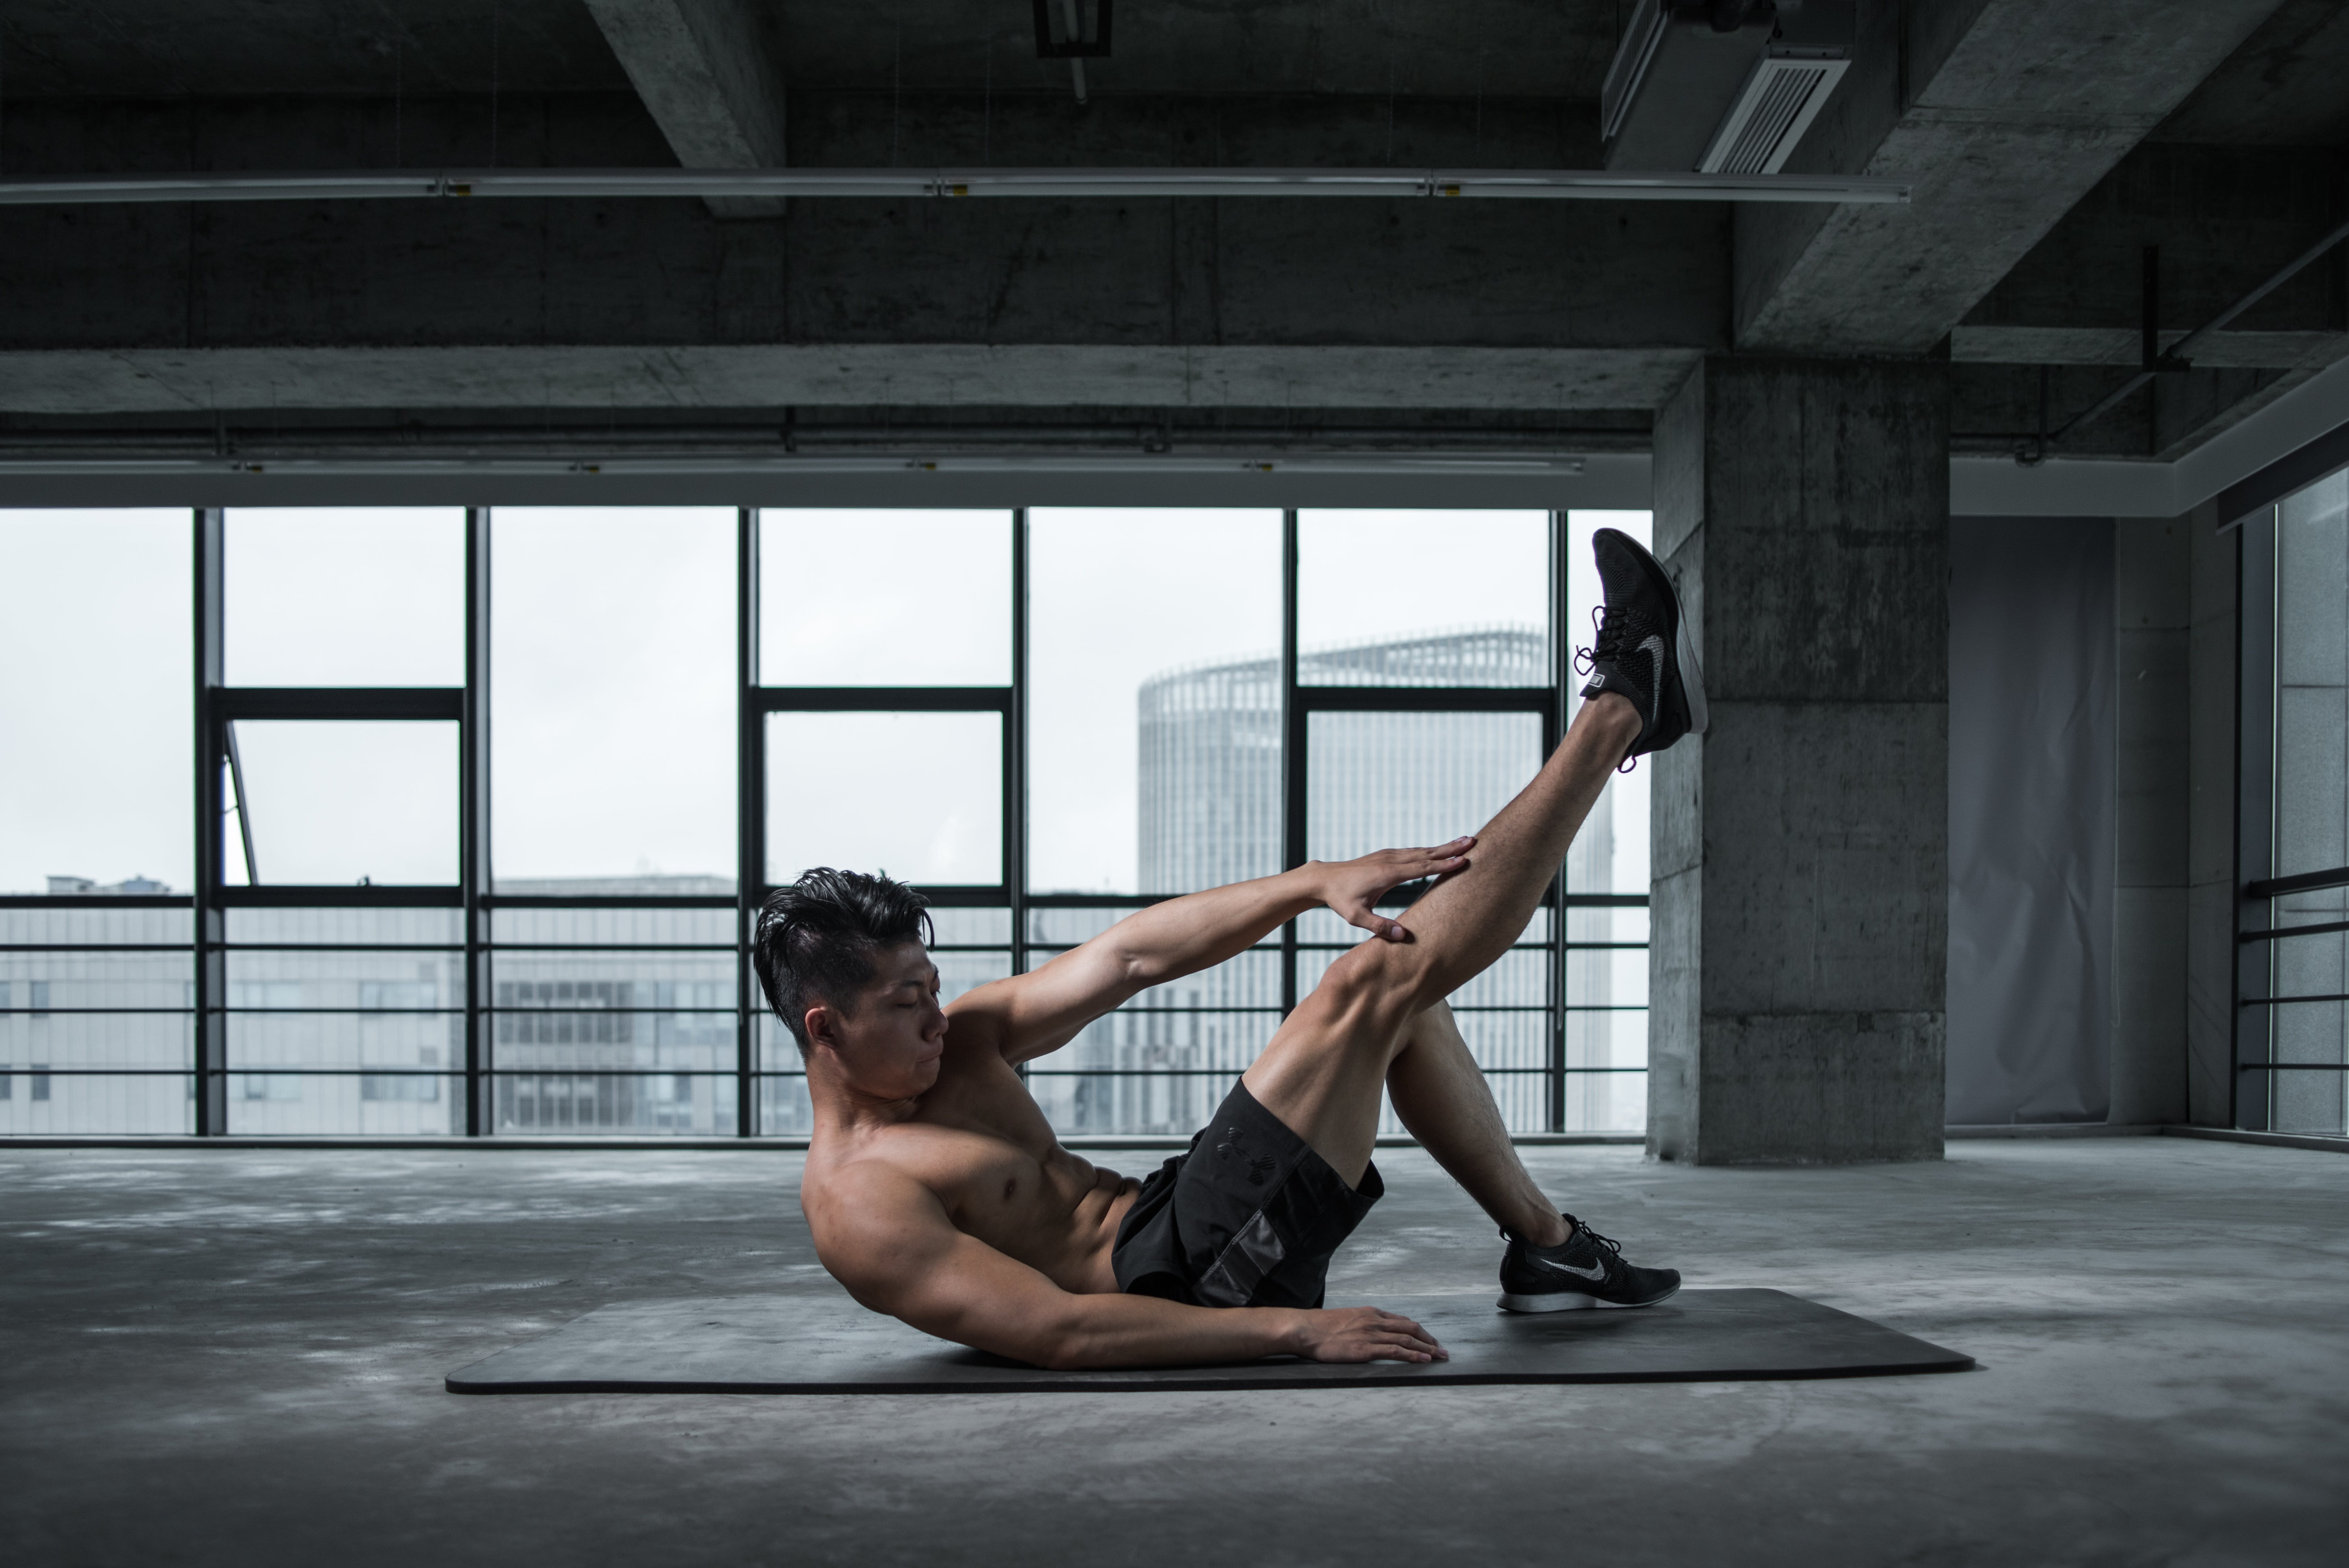 Photo of Topless Man Exercising on Yoga Mat